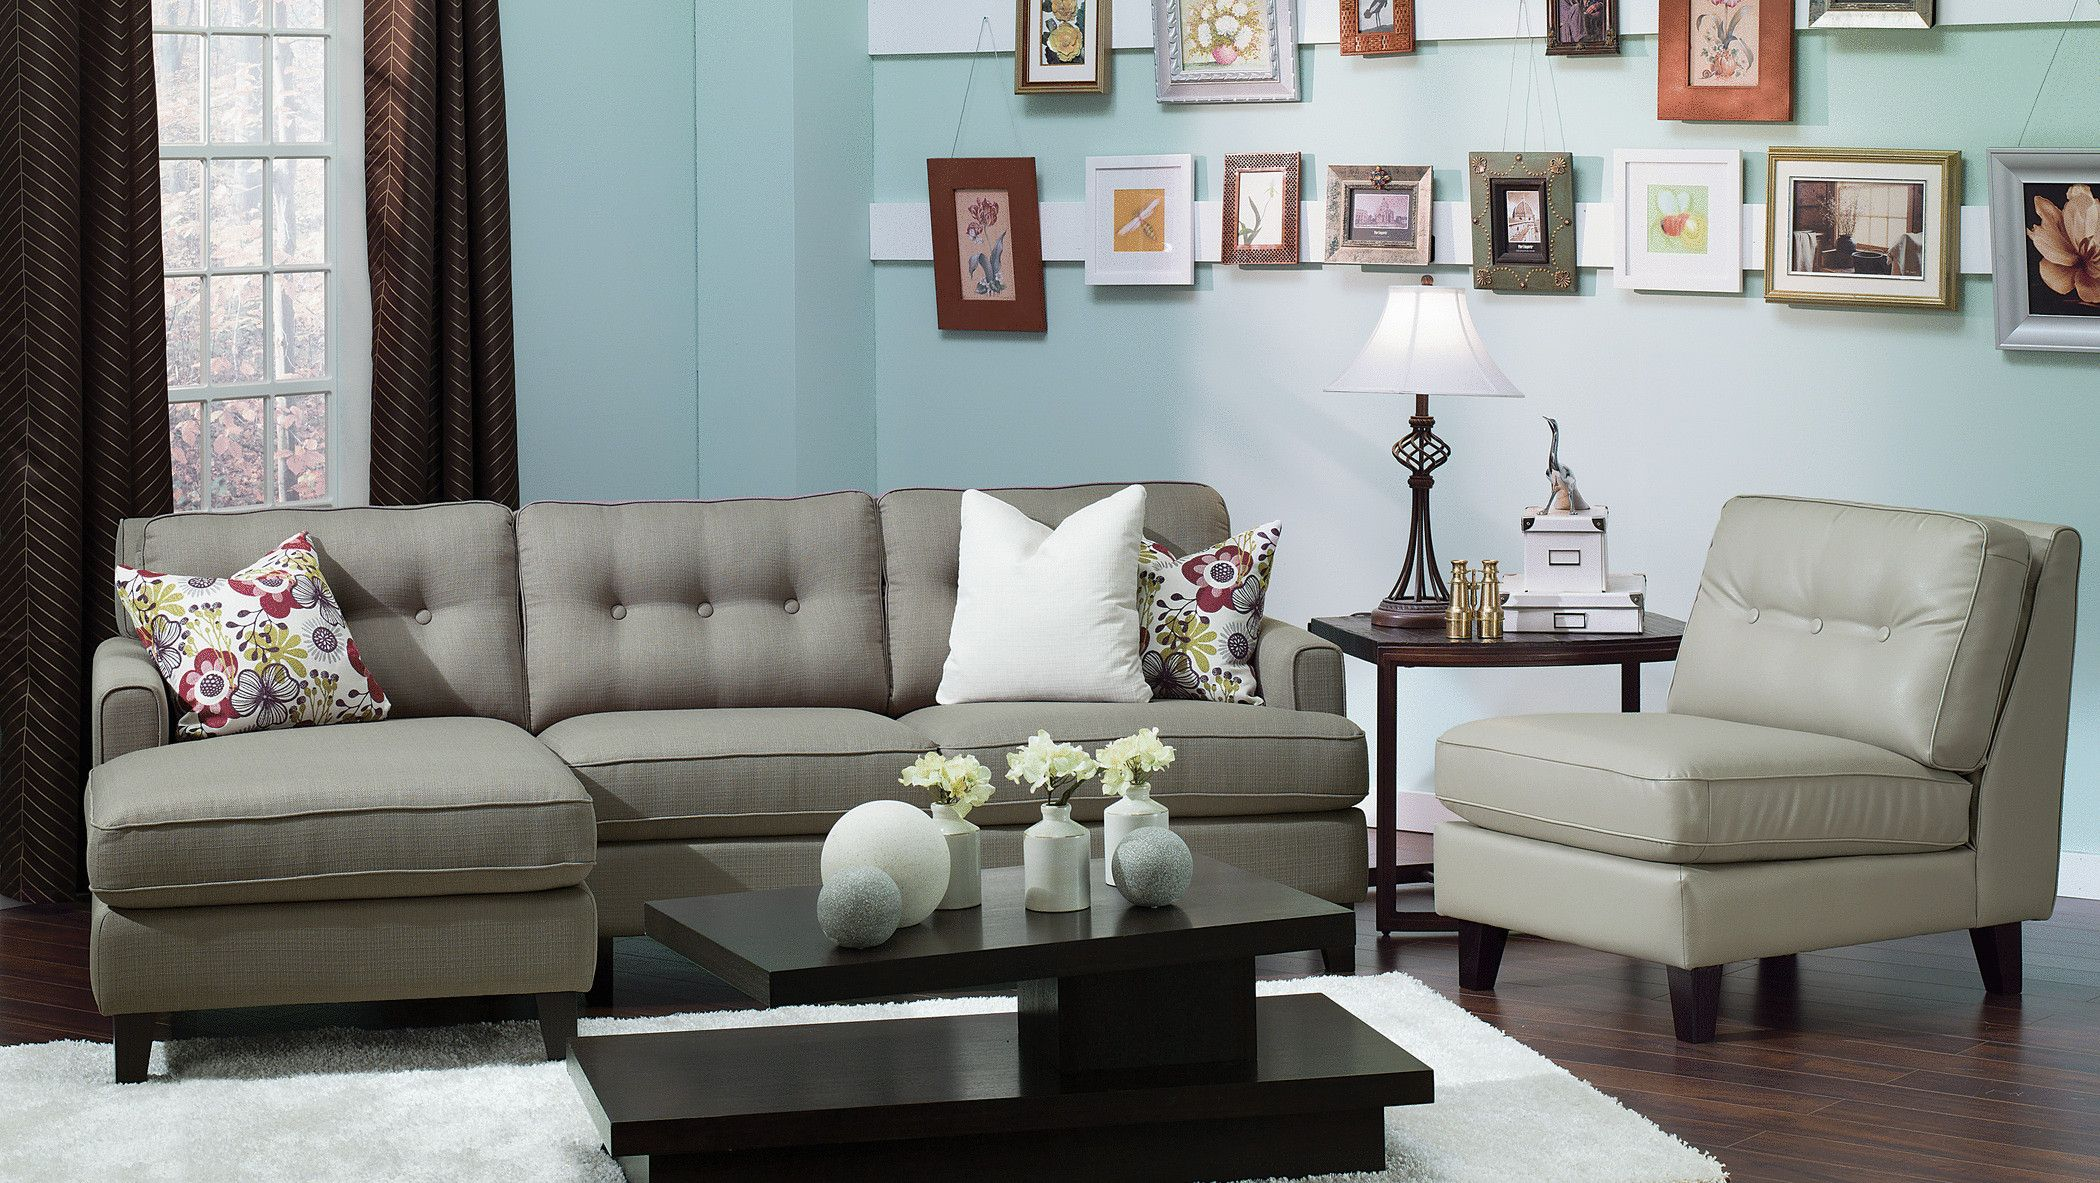 Palliser Buttonback sectional from the Runway Collection